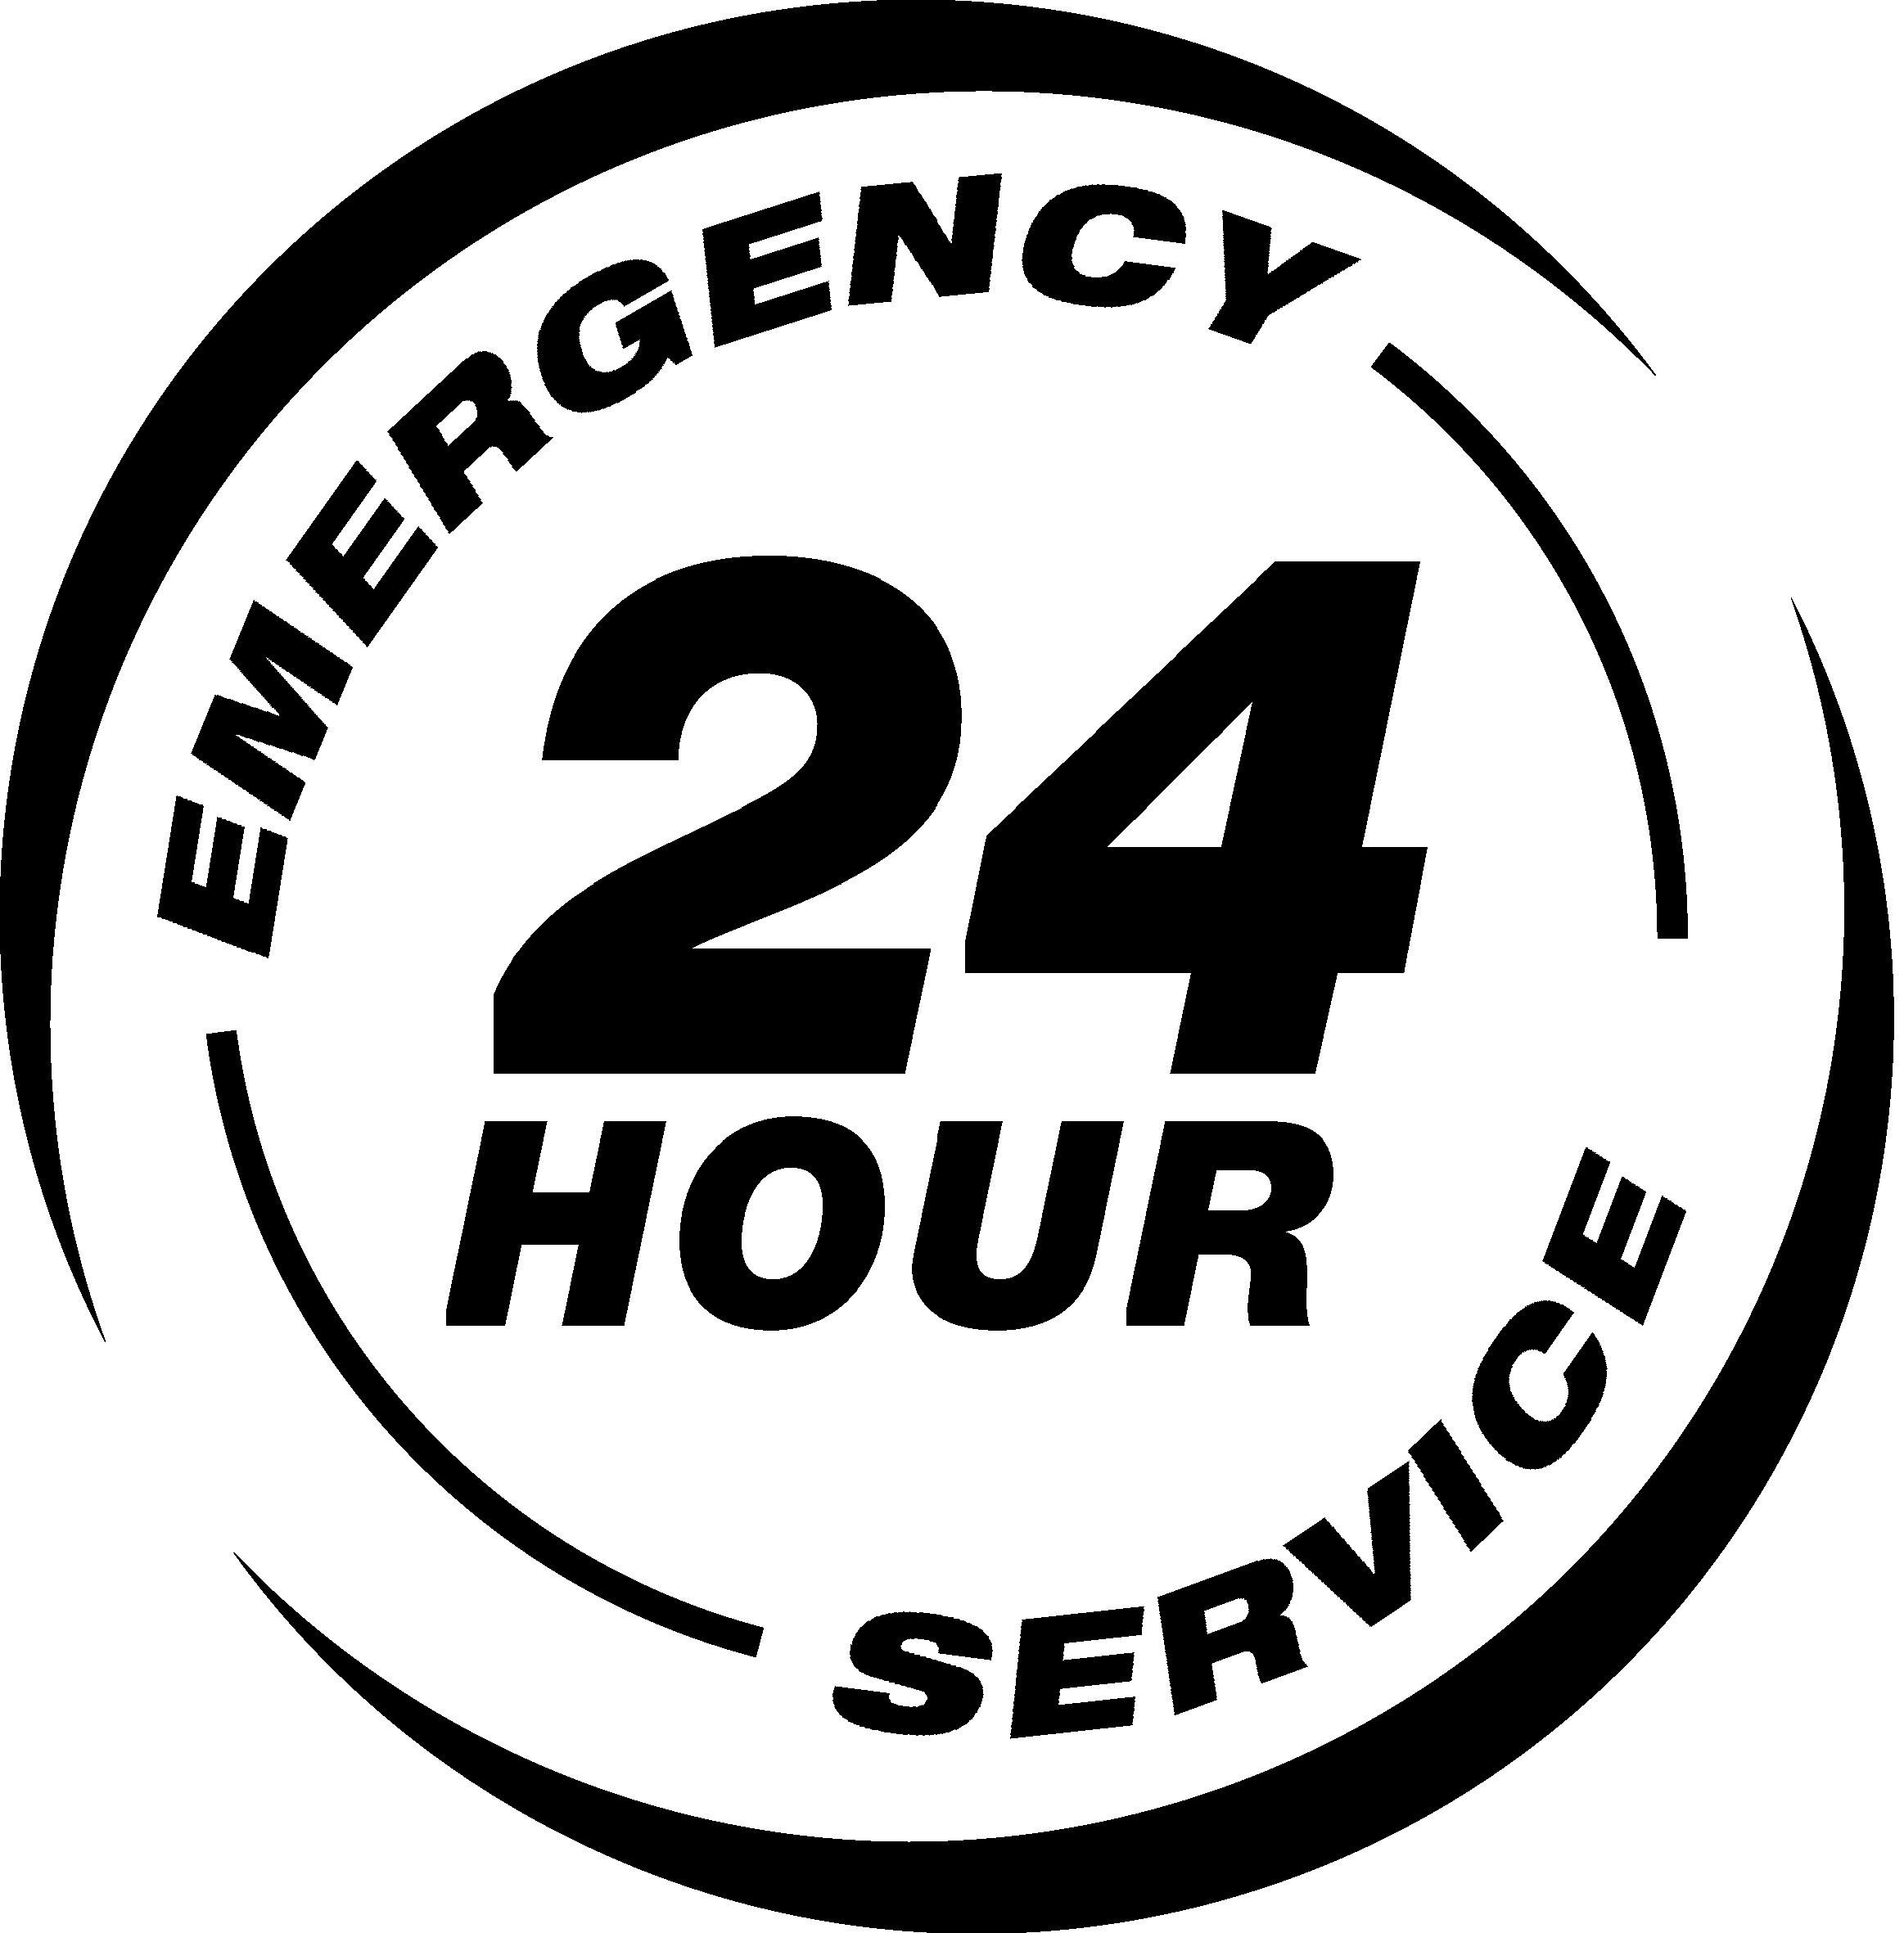 We offer 24 hour emergency services for water, fire, flood